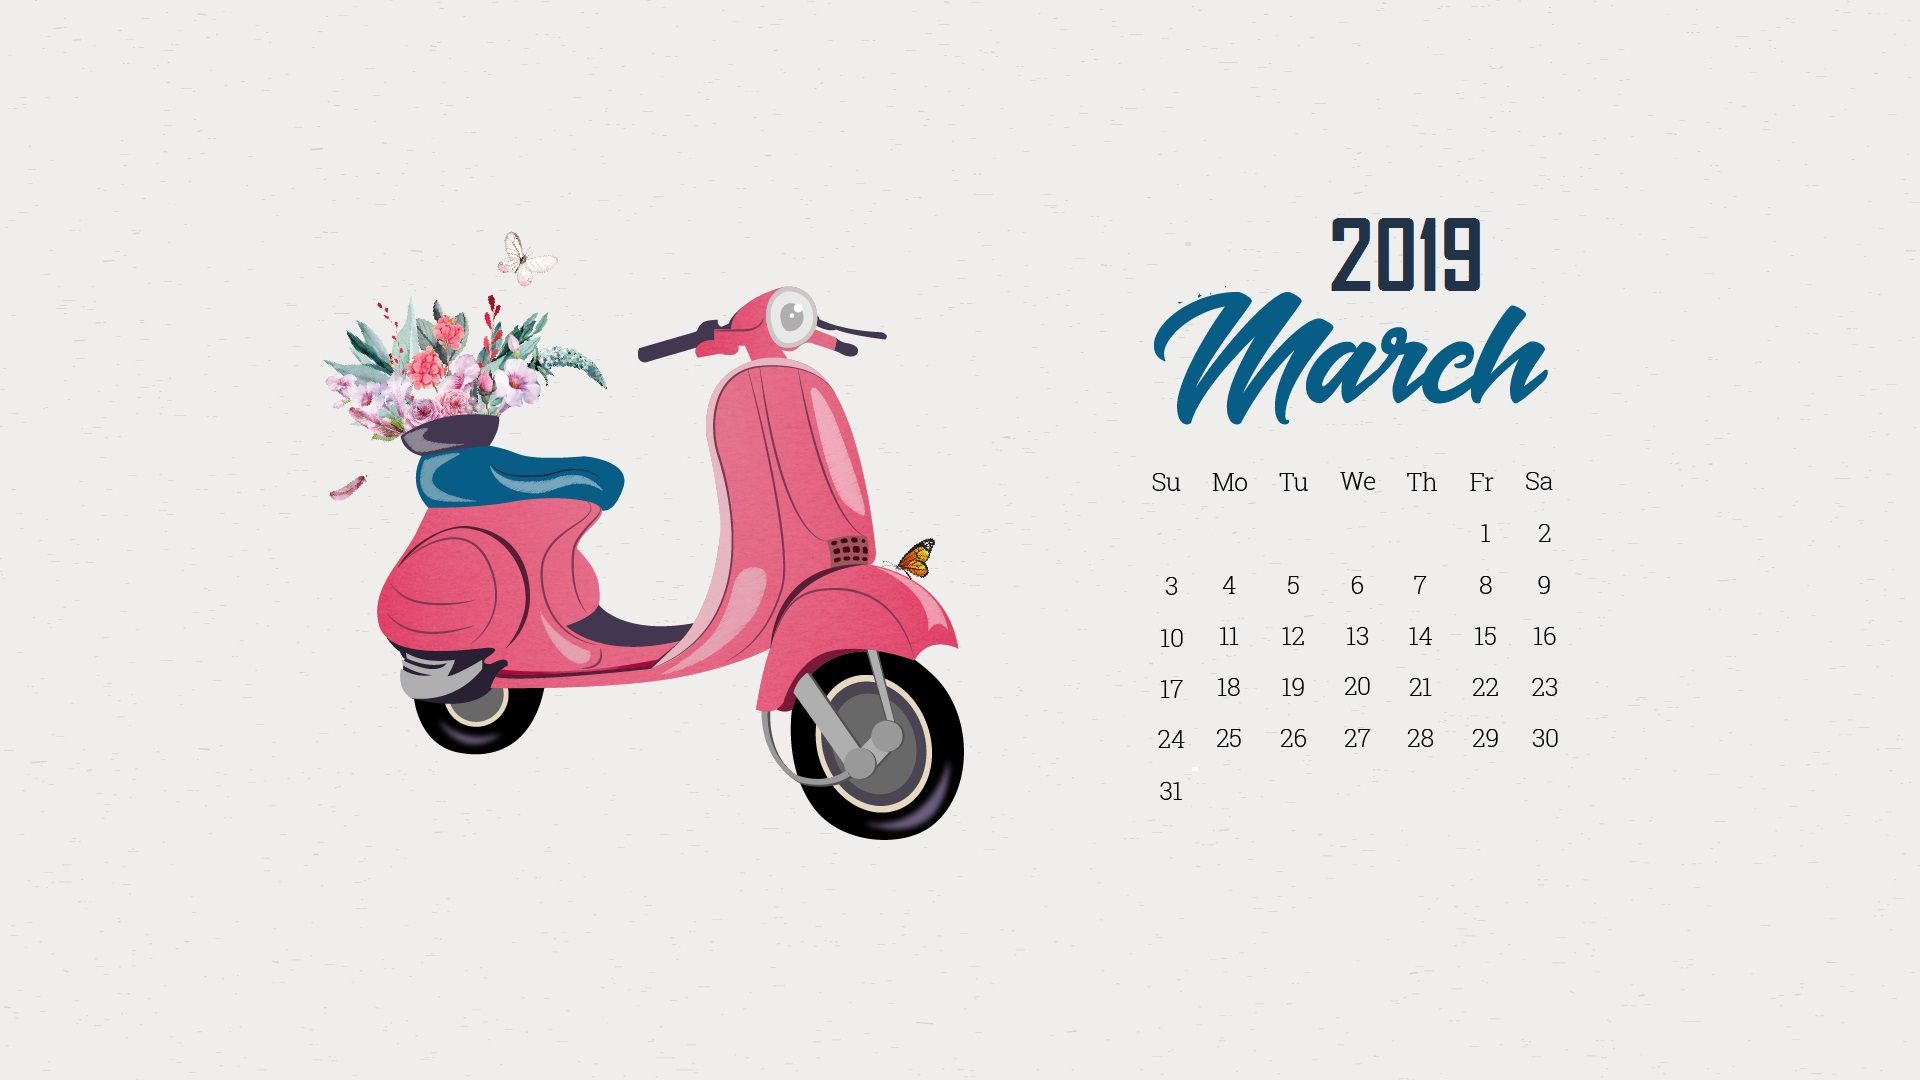 March 2019 Calendar Wallpapers Calendar Wallpaper Desktop Wallpaper Calendar Desktop Calendar